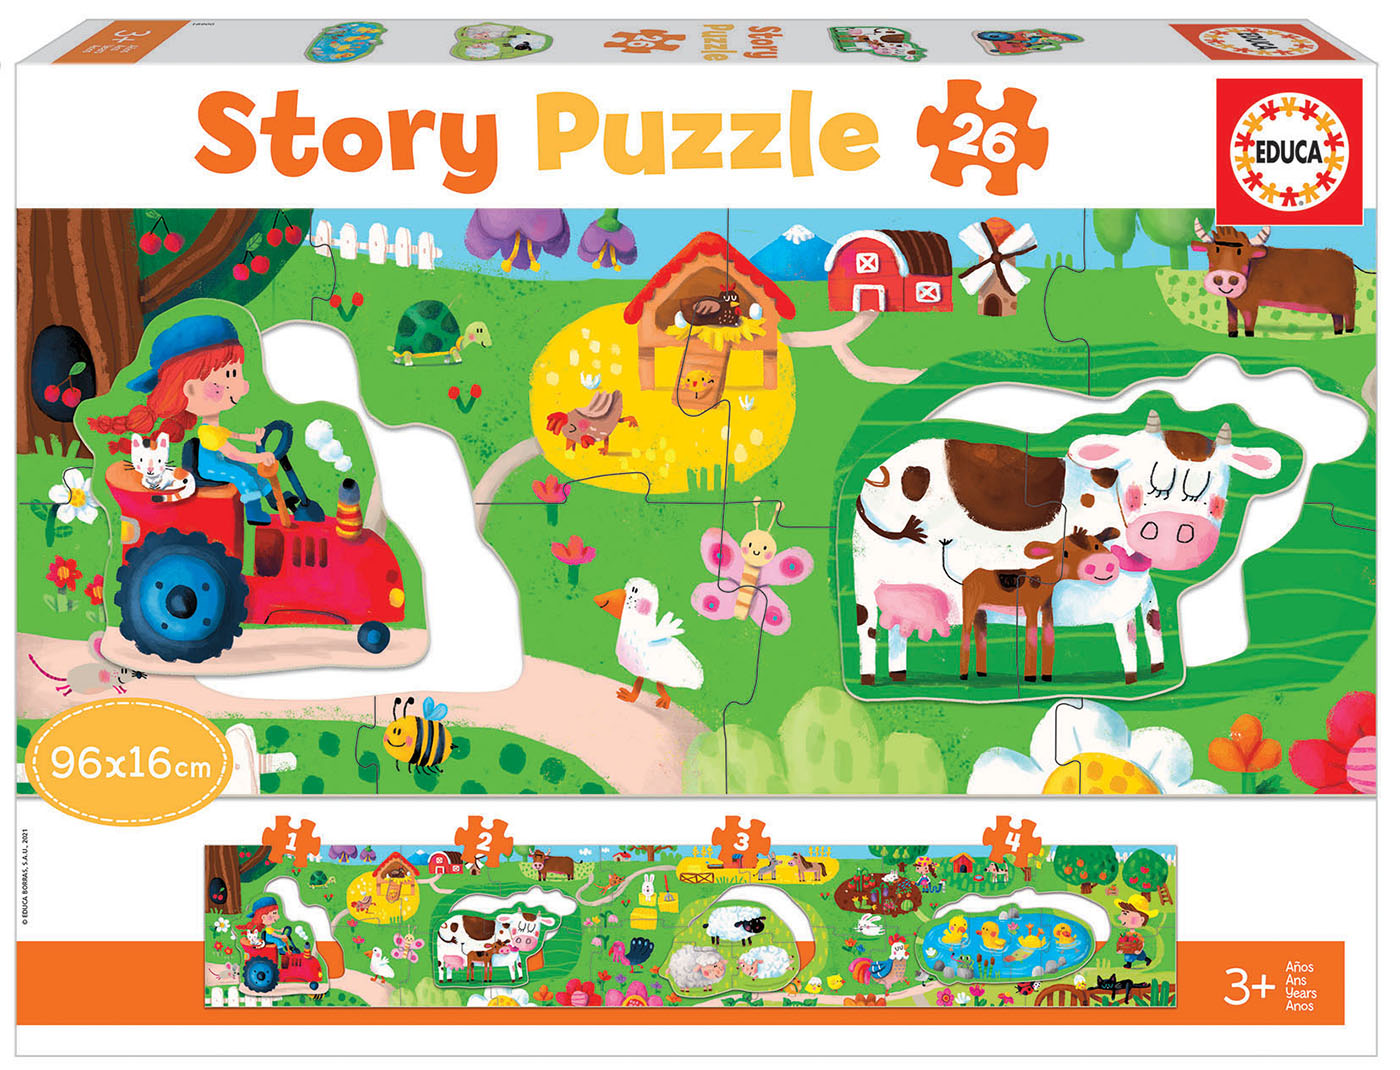 26 A Quinta Story Puzzle